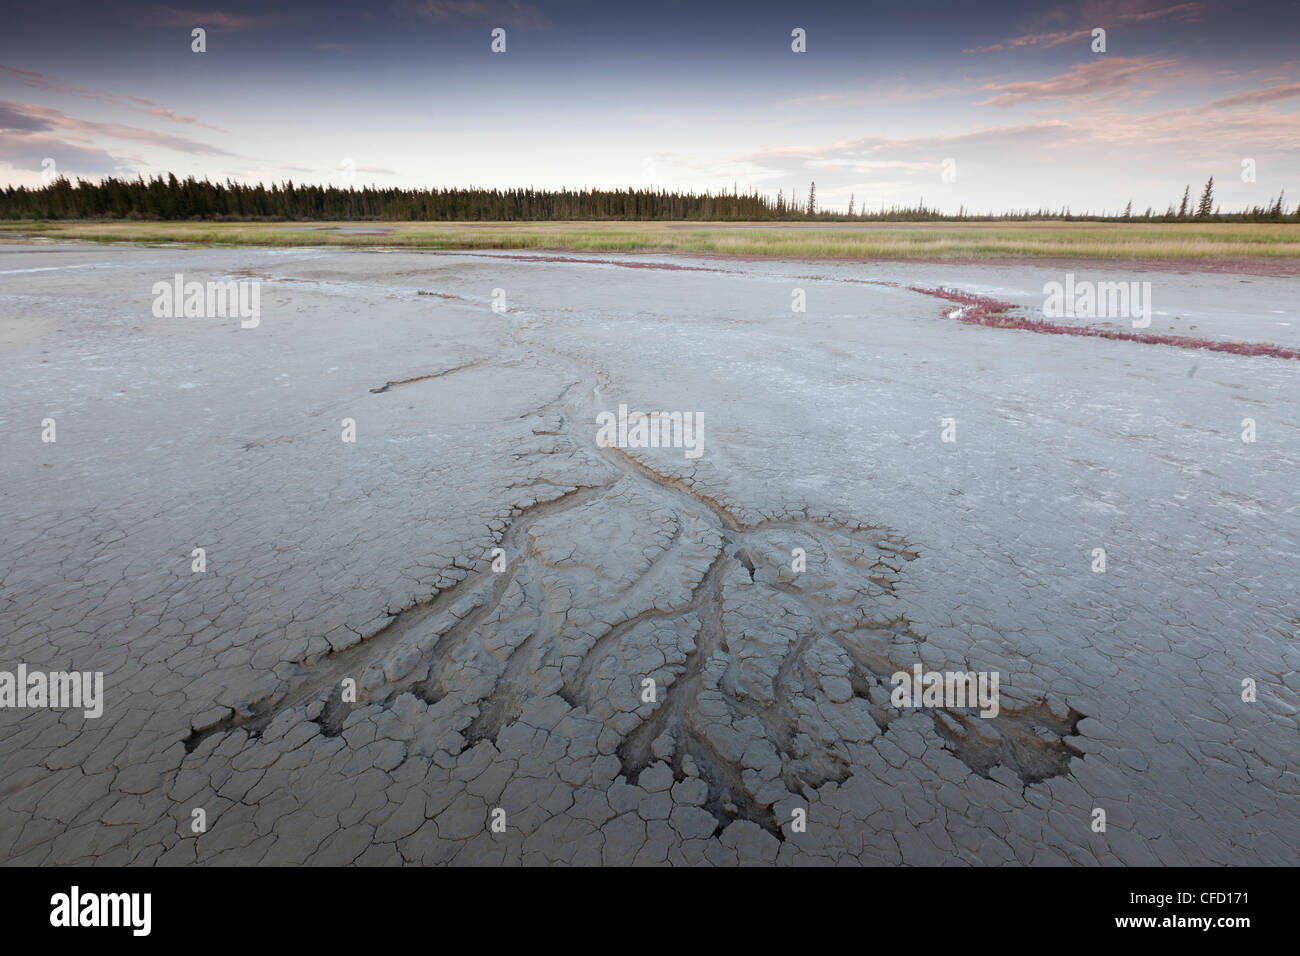 The Salt Plains in Wood Buffalo National Park located on the border of Alberta and the Northwest Territories, Canada - Stock Image